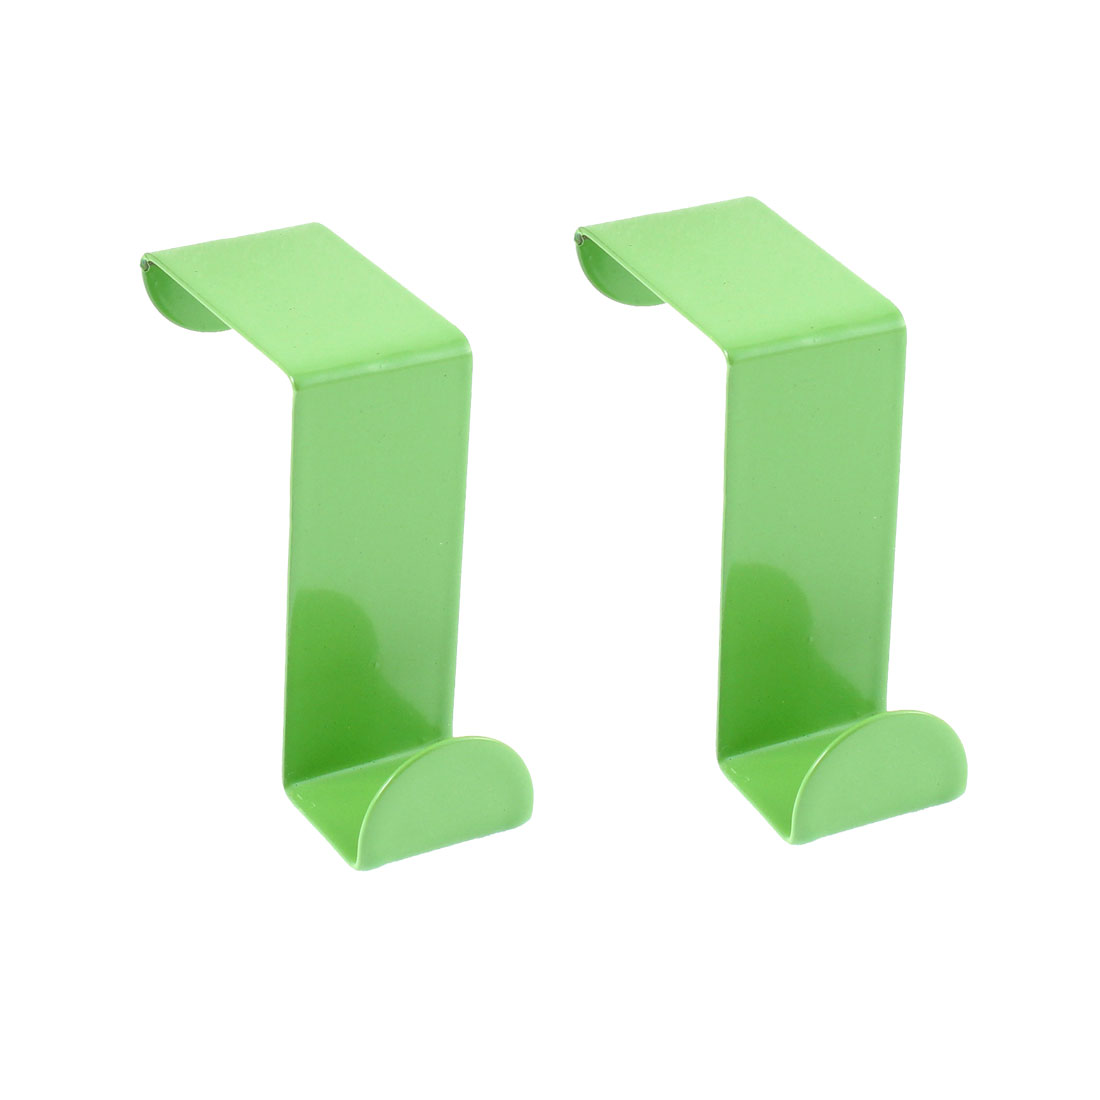 Bathroom Bedroom Stainless Steel S Shaped Door Hook Hanger Holder Green 2 Pcs